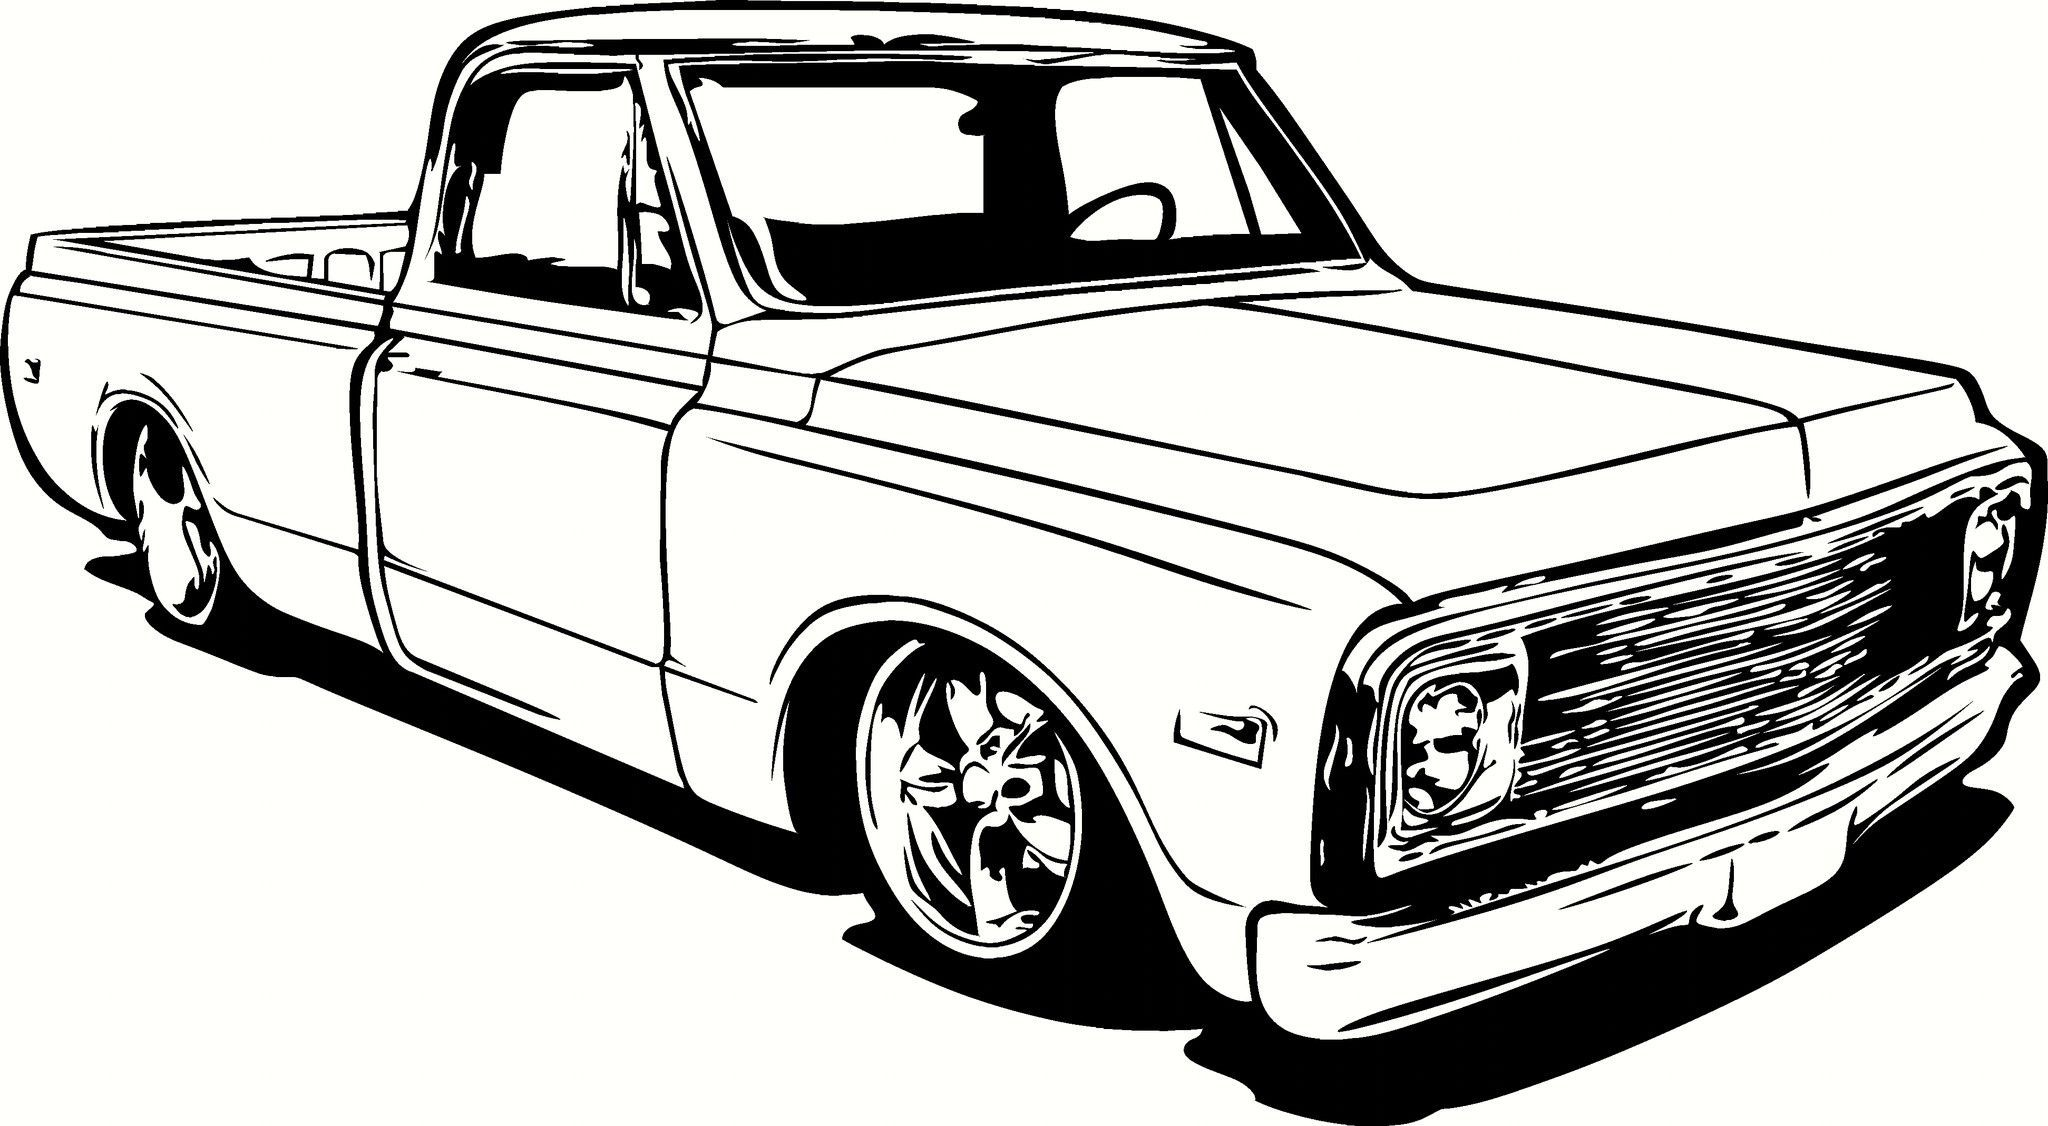 Chevrolet C10 Pick Up Truck Vinyl Cut Out Decal